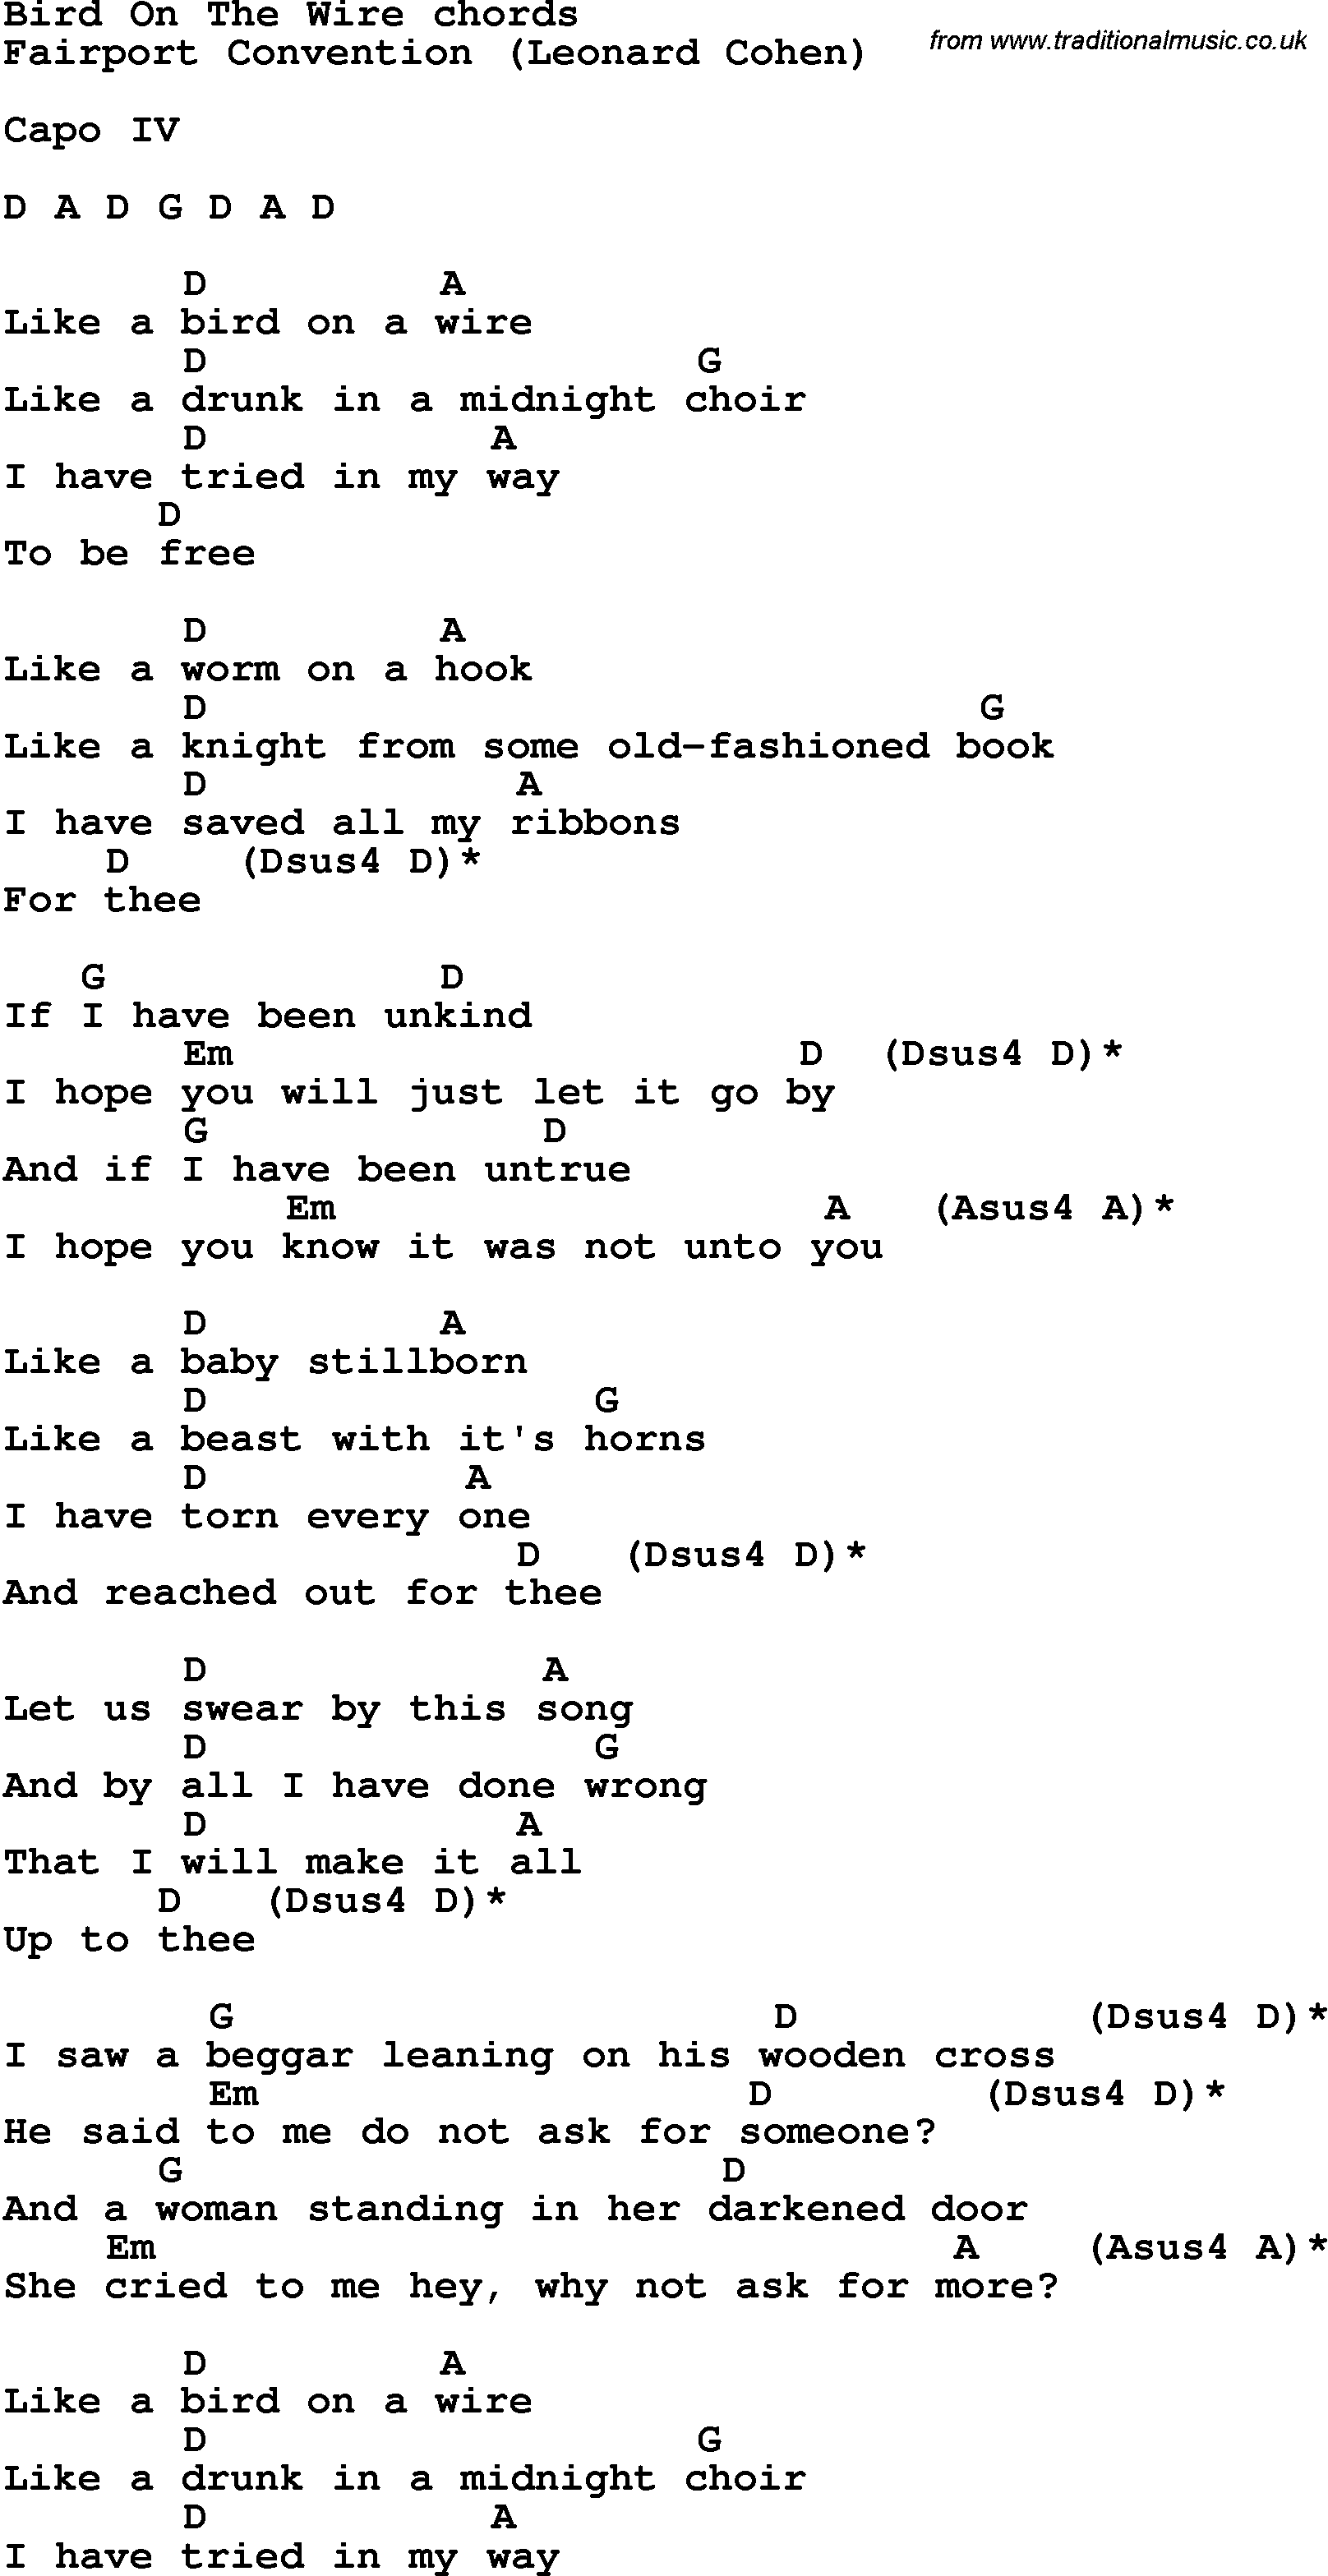 Song Lyrics With Guitar Chords For Bird On The Wire